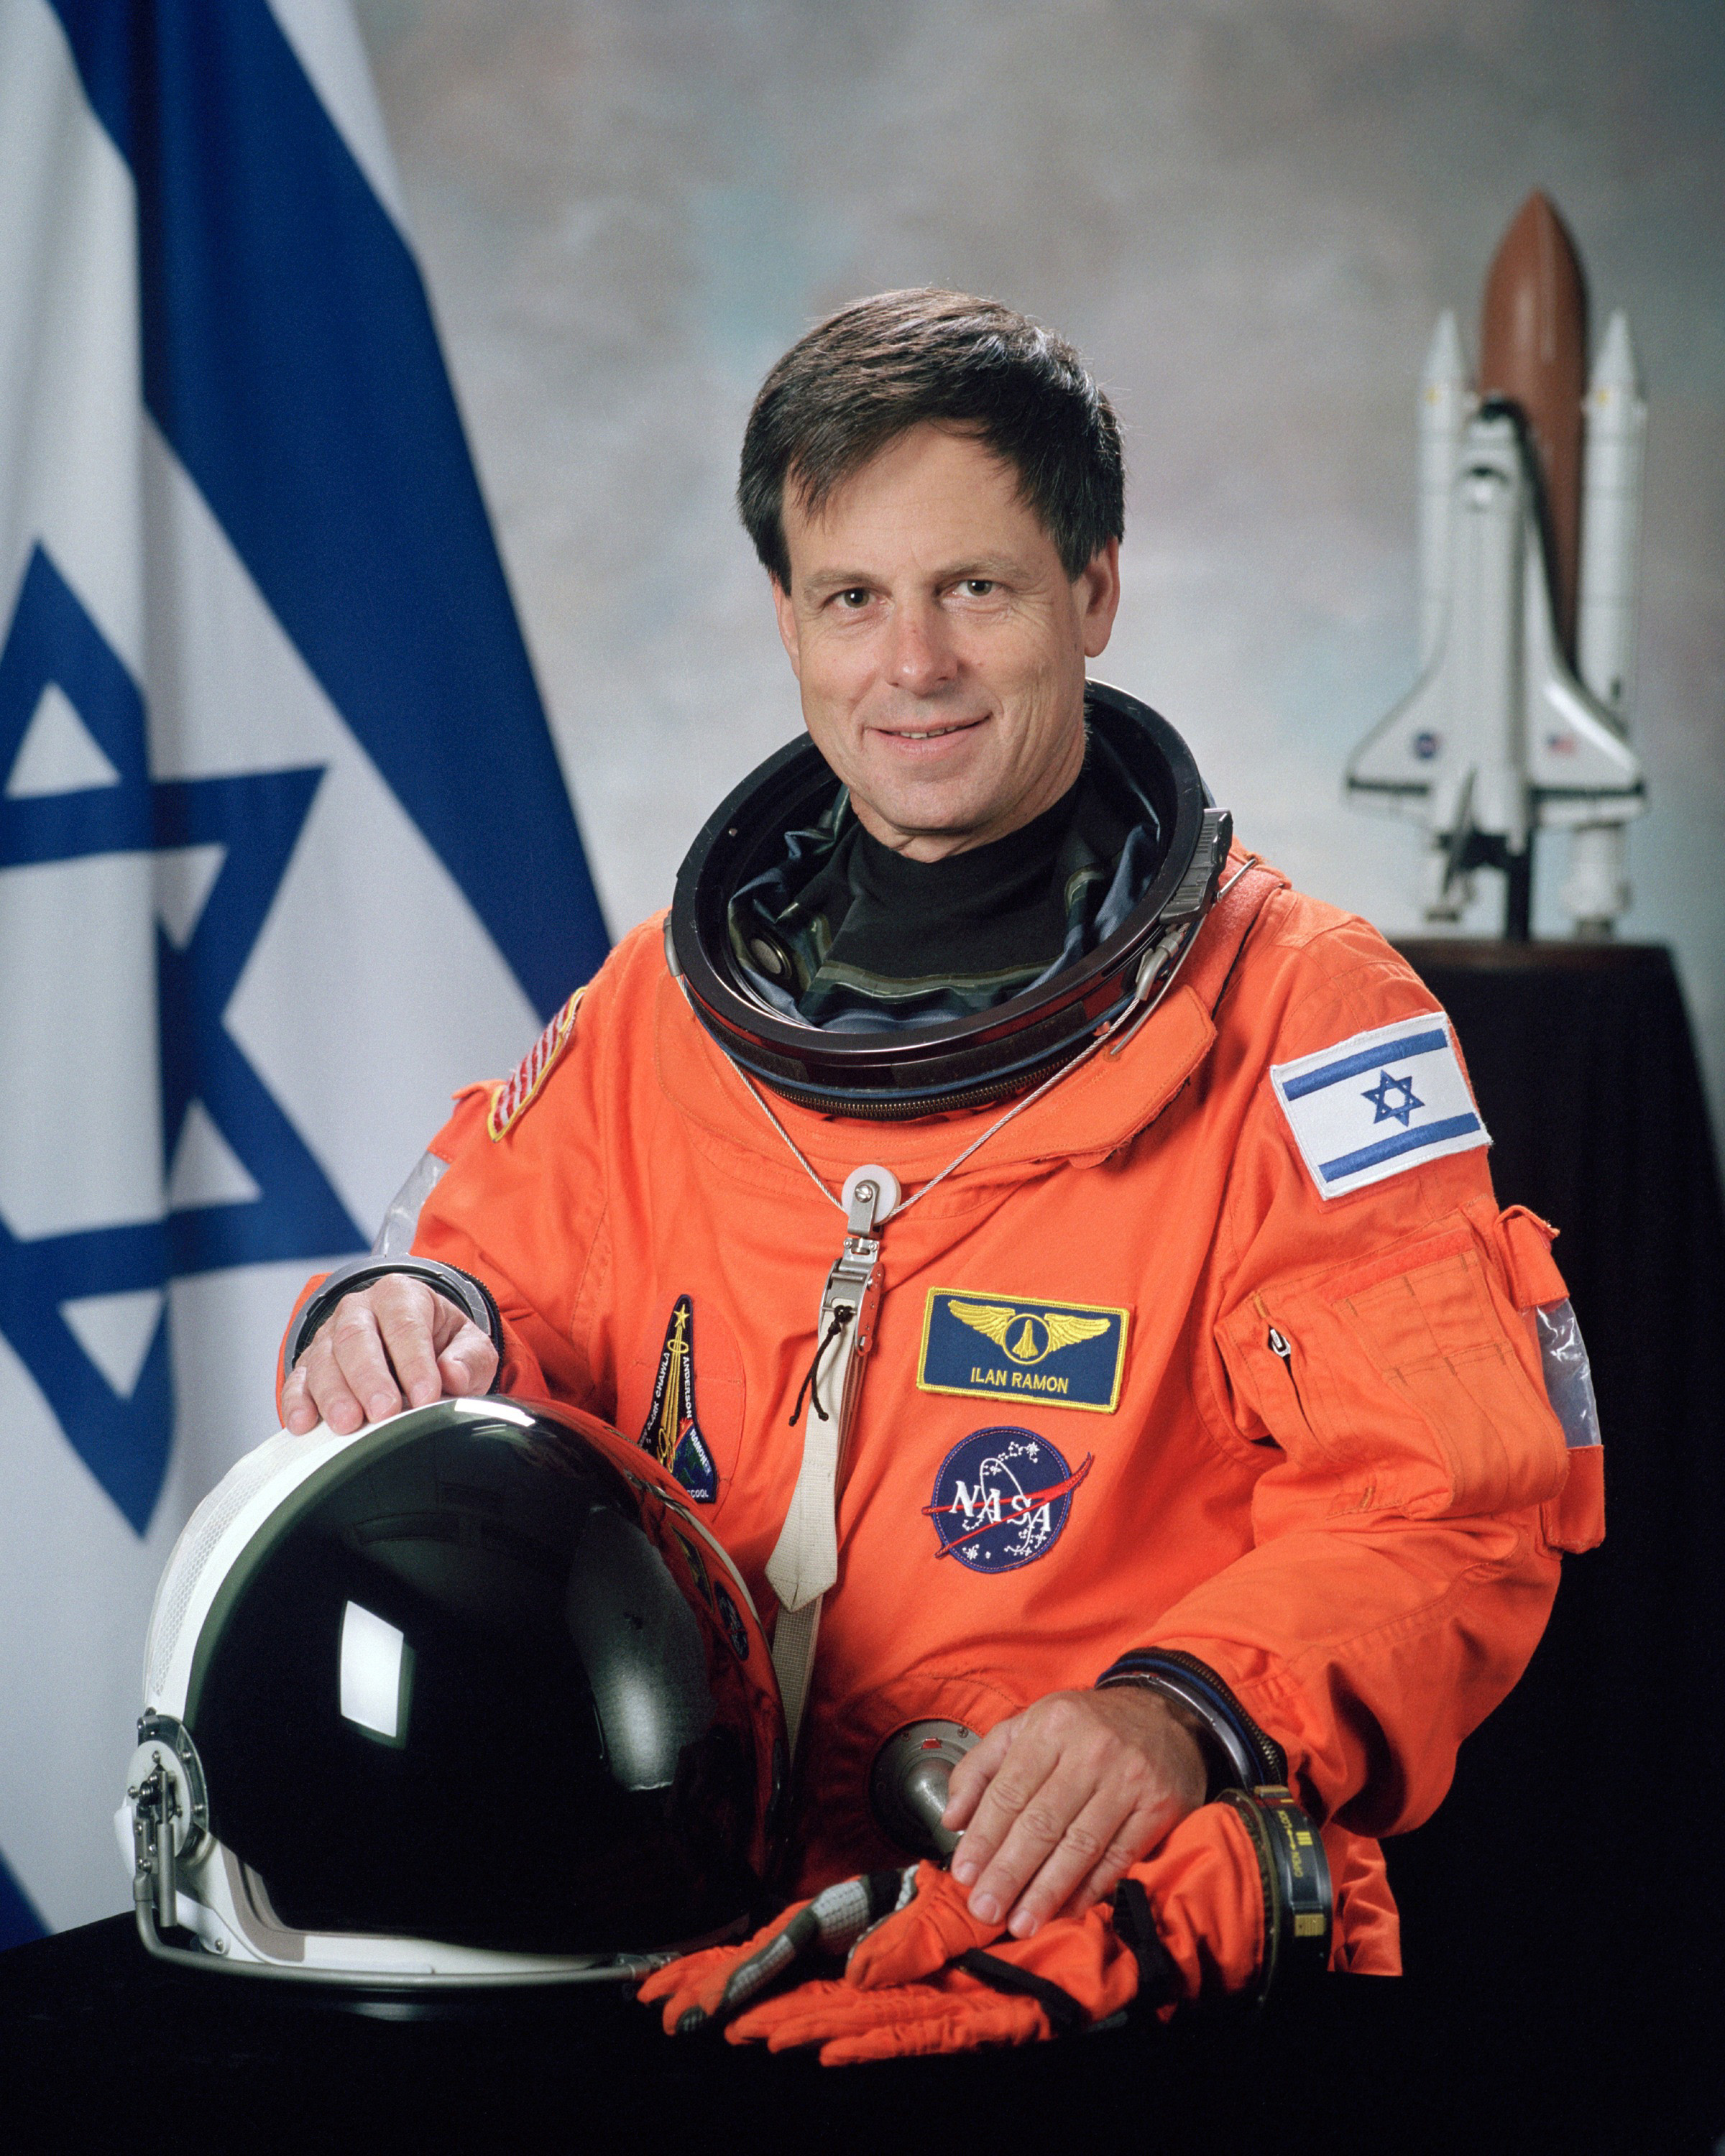 Ilan ramon nasa photo portrait in orange suit jpg wikimedia commons